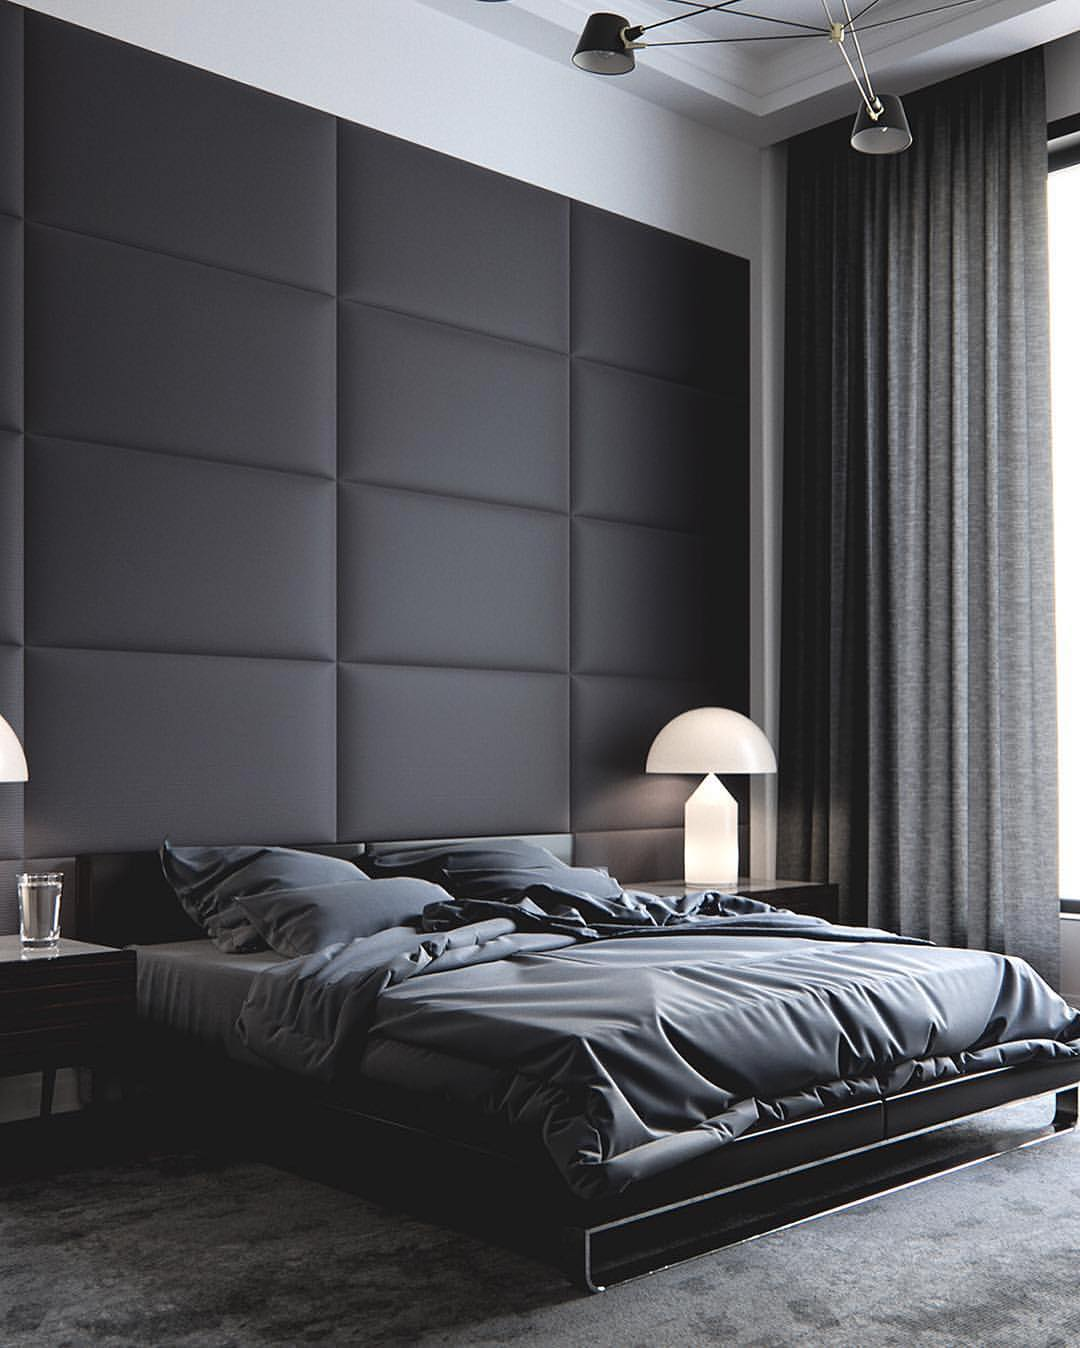 New Home Designs Latest Modern Homes Bedrooms Designs: 10 Chambres Inspirantes Aux Tonalités Masculines